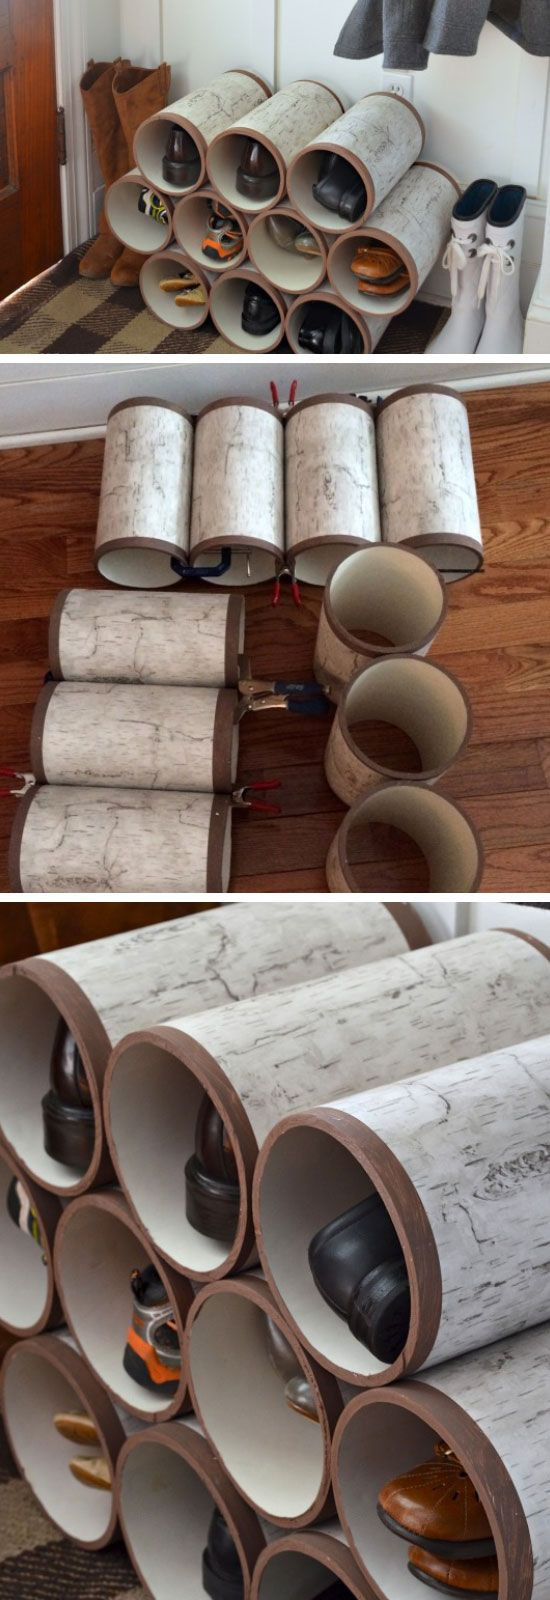 DIY Shoe Rack For Small Closet  22 DIY Shoe Storage Ideas for Small Spaces